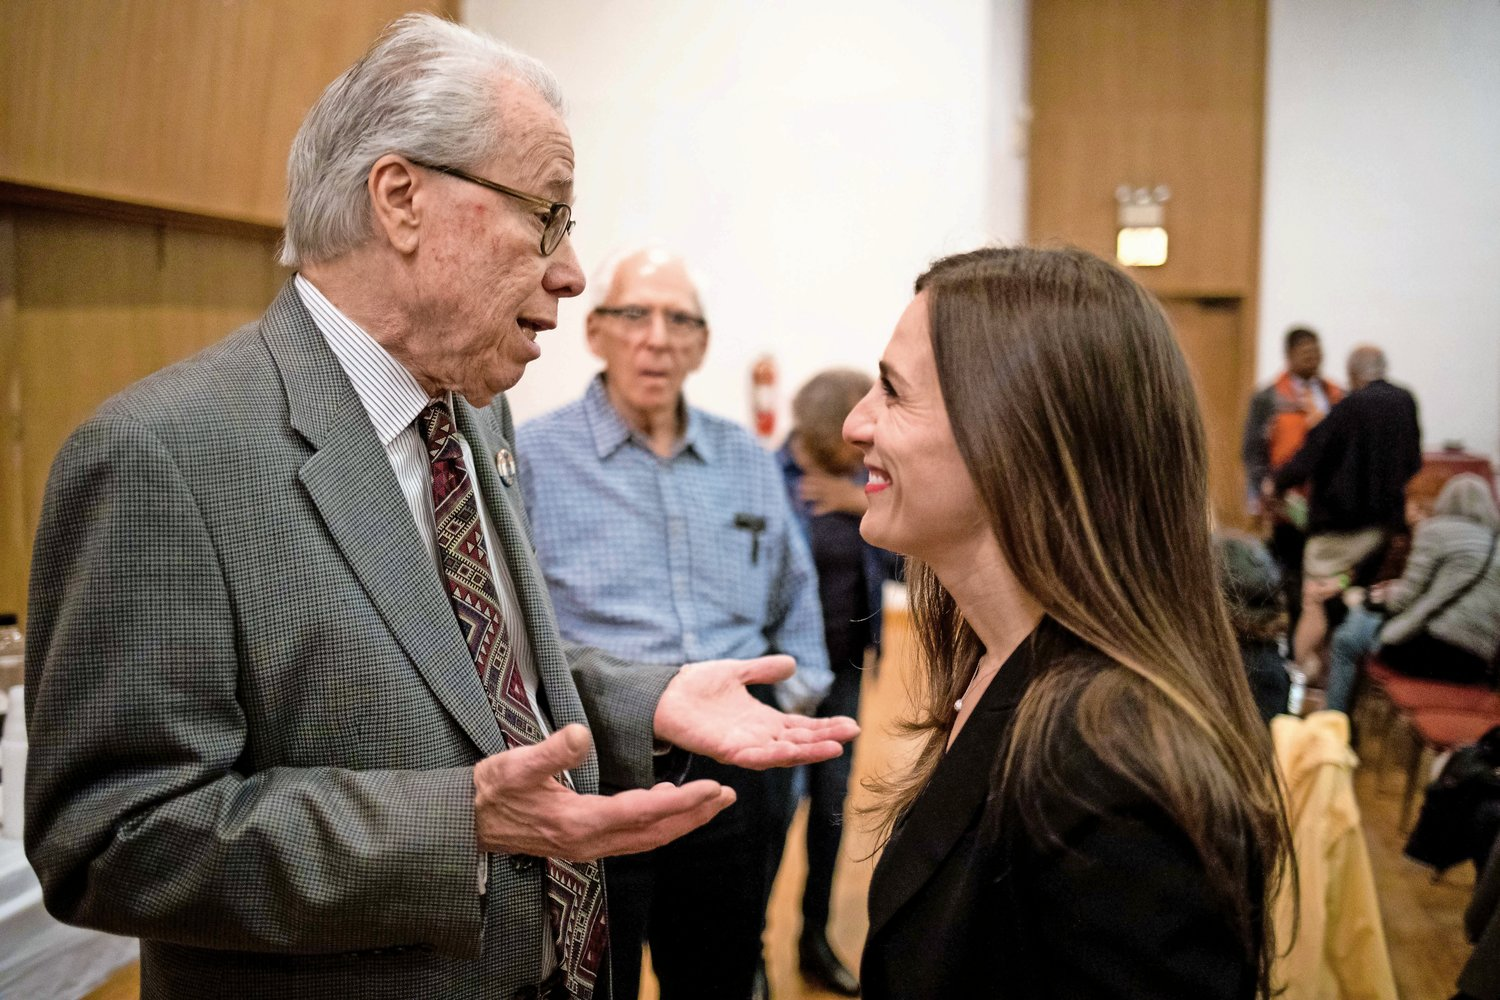 Alessandra Biaggi speaks with Bruce Feld, the vice president of the Benjamin Franklin Reform Democratic Club, ahead of the club?s endorsement meeting on April 25. Biaggi did not secure the club?s nomination, but ultimately defeated her opponent, state Sen. Jeff Klein, in the primary on Sept. 13.